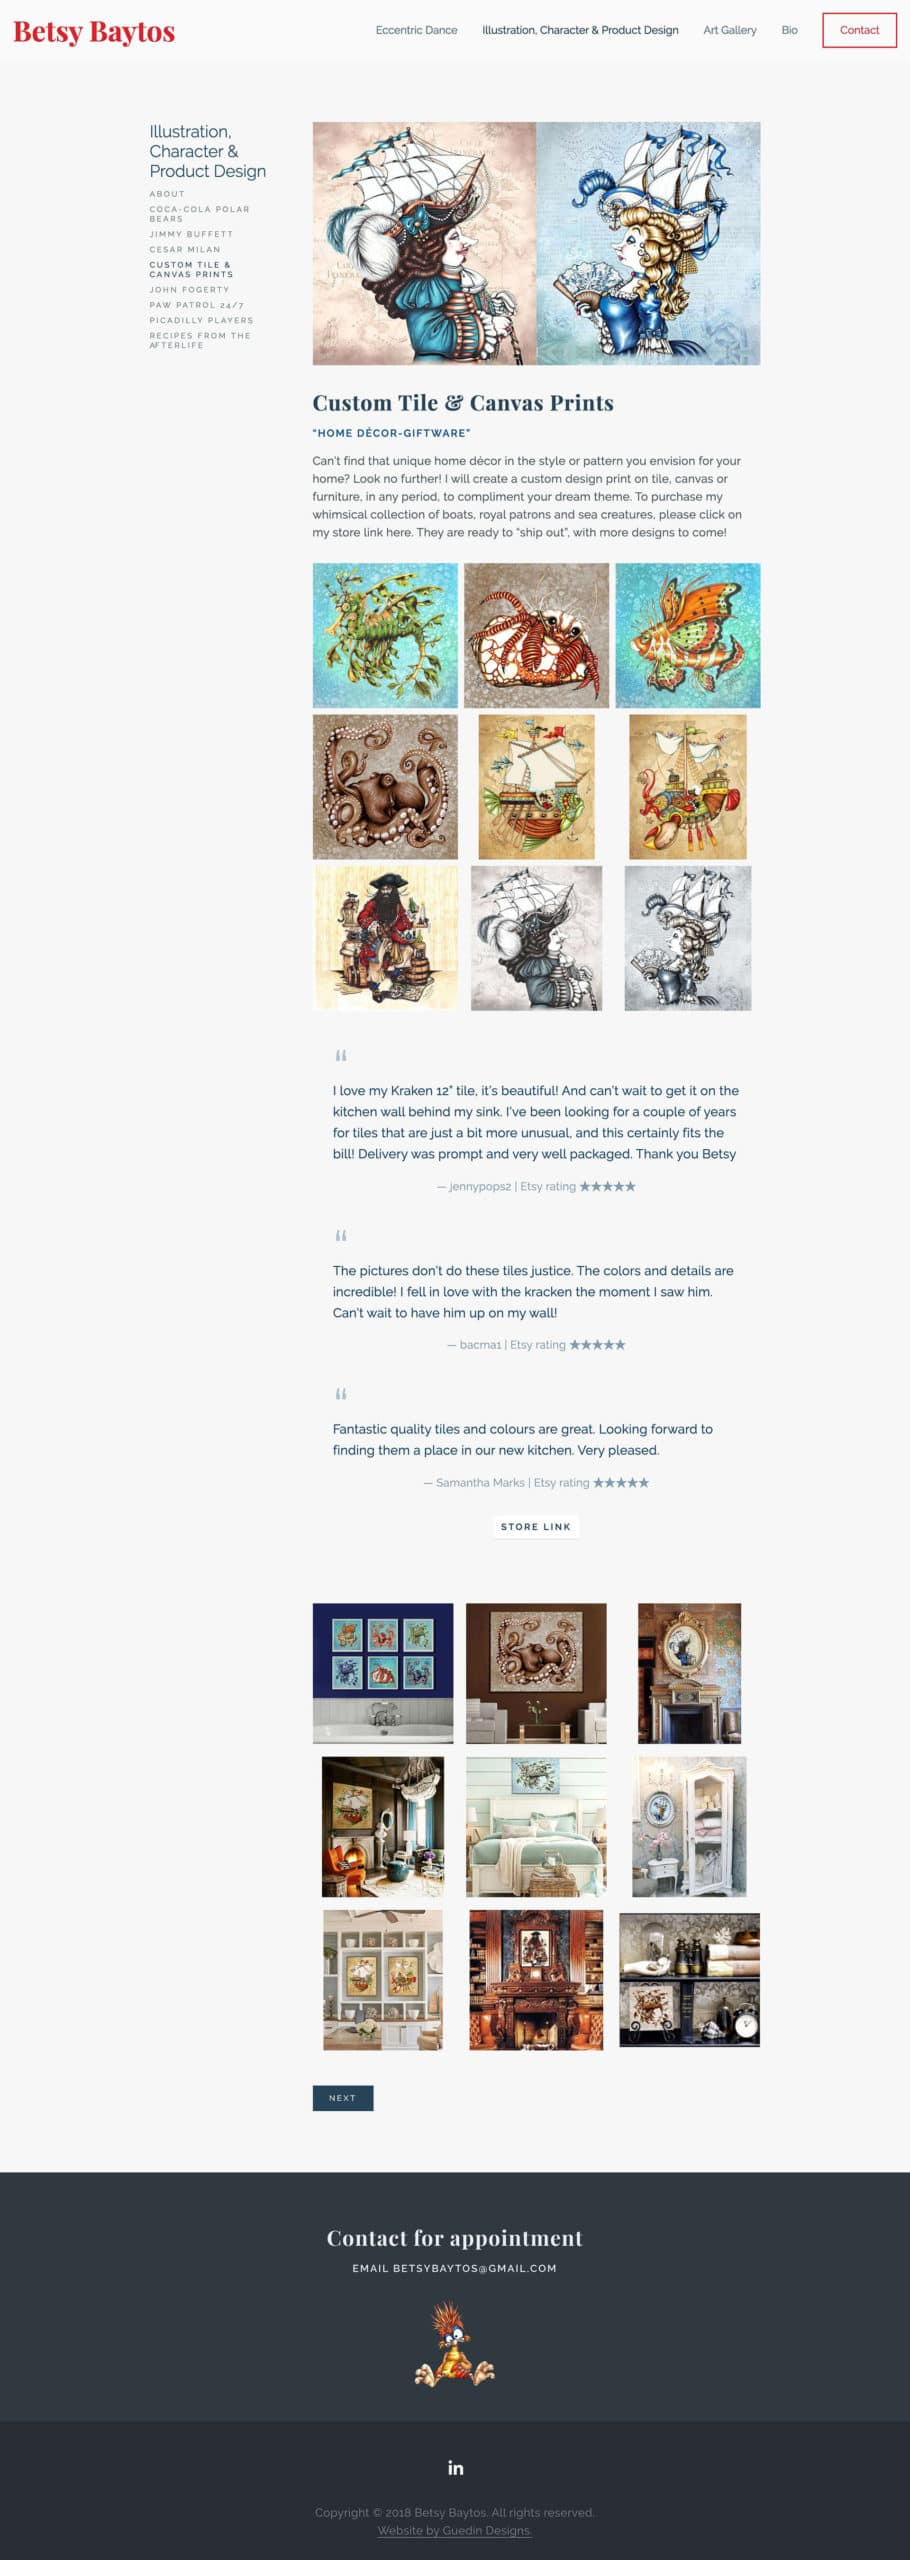 Betsy Baytos Custom Tile and Canvas Prints page